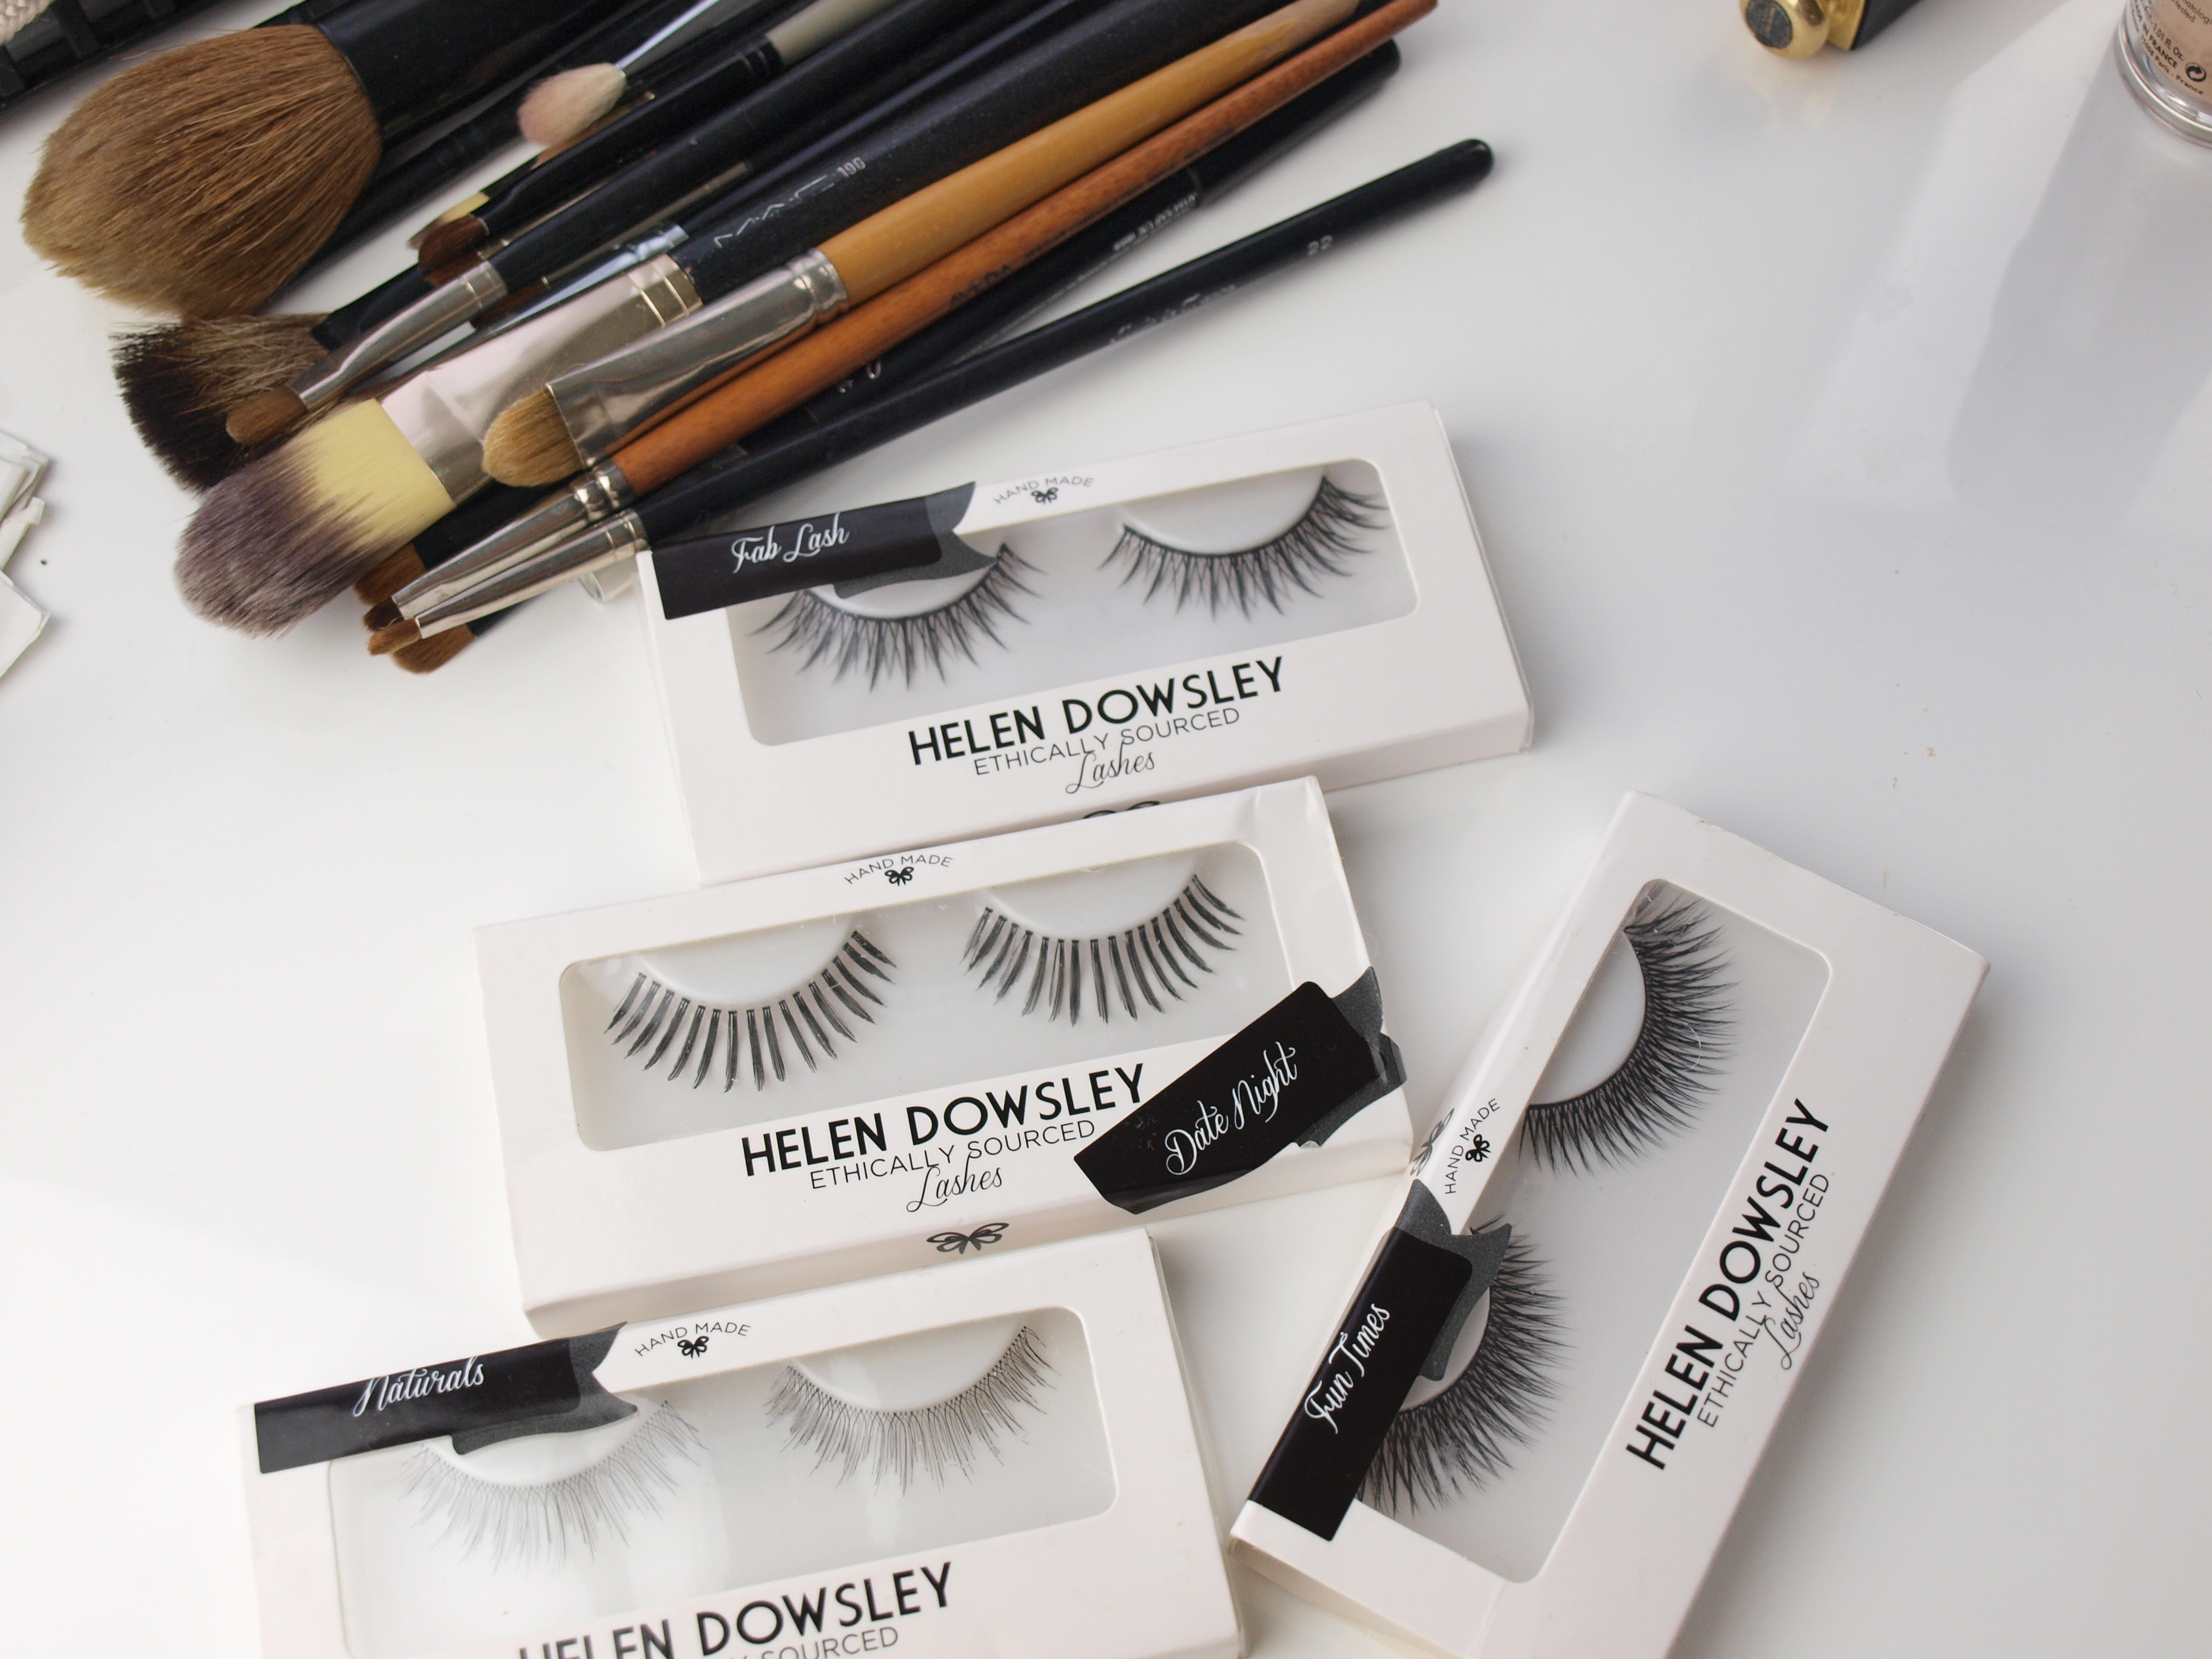 Helen Dowsley Lashes